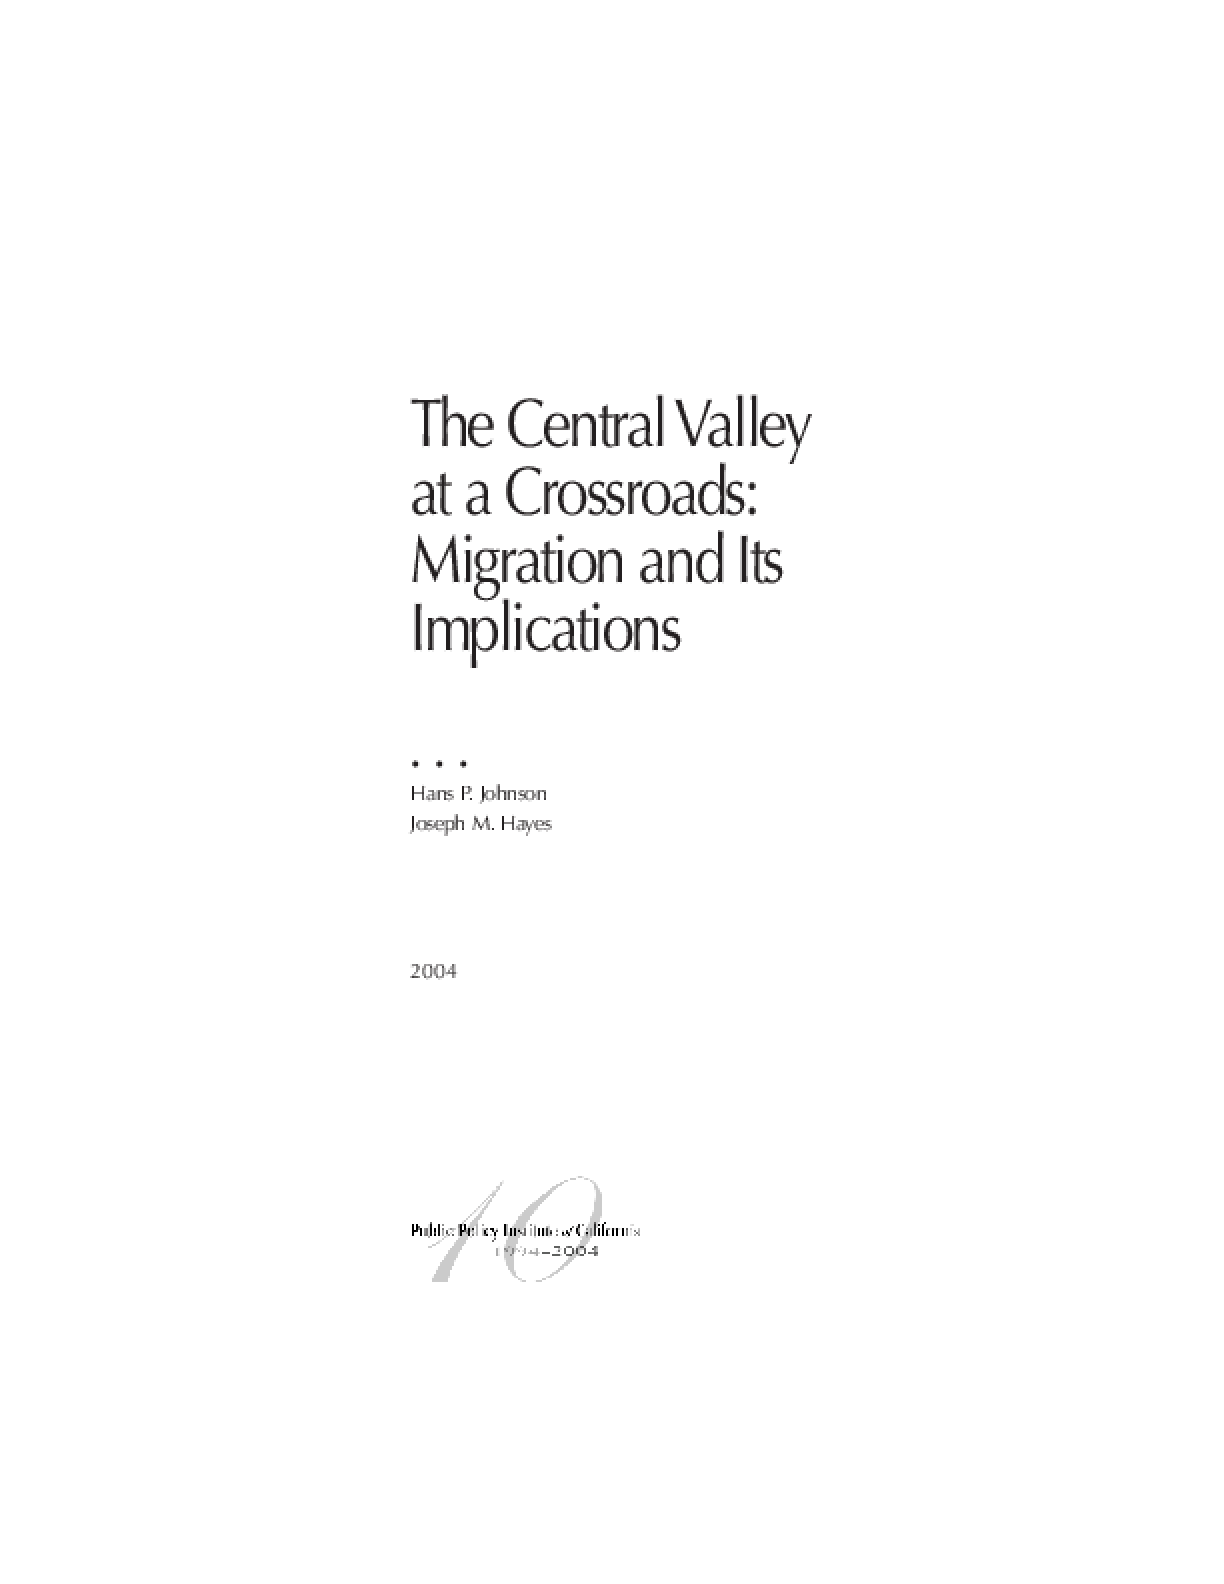 The Central Valley at a Crossroads: Migration and Its Implications